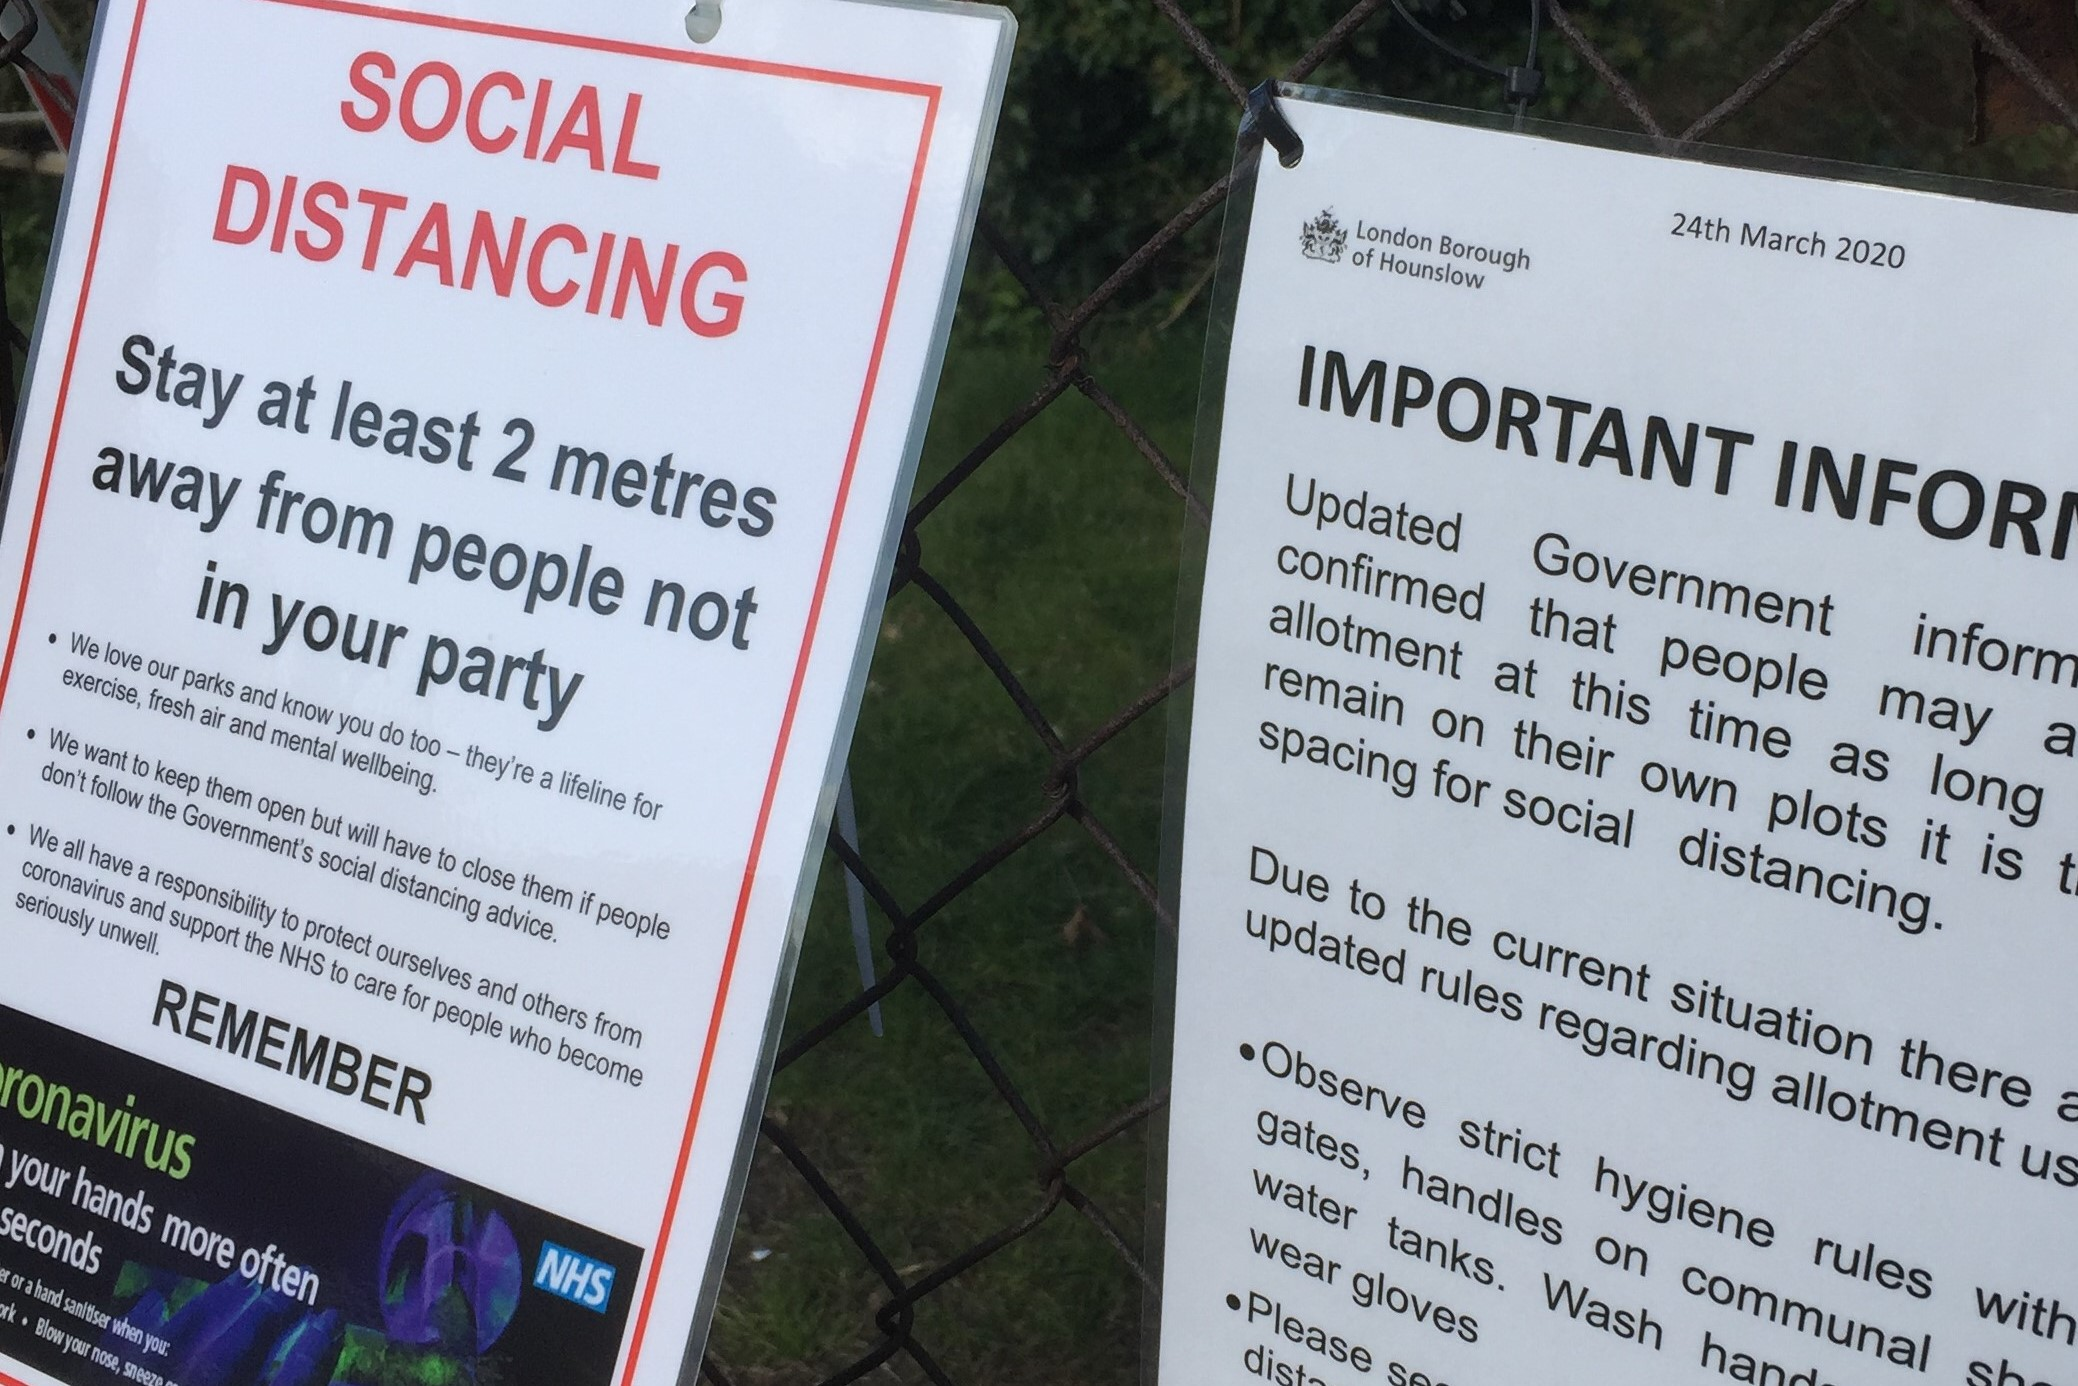 Social Distancing Messages